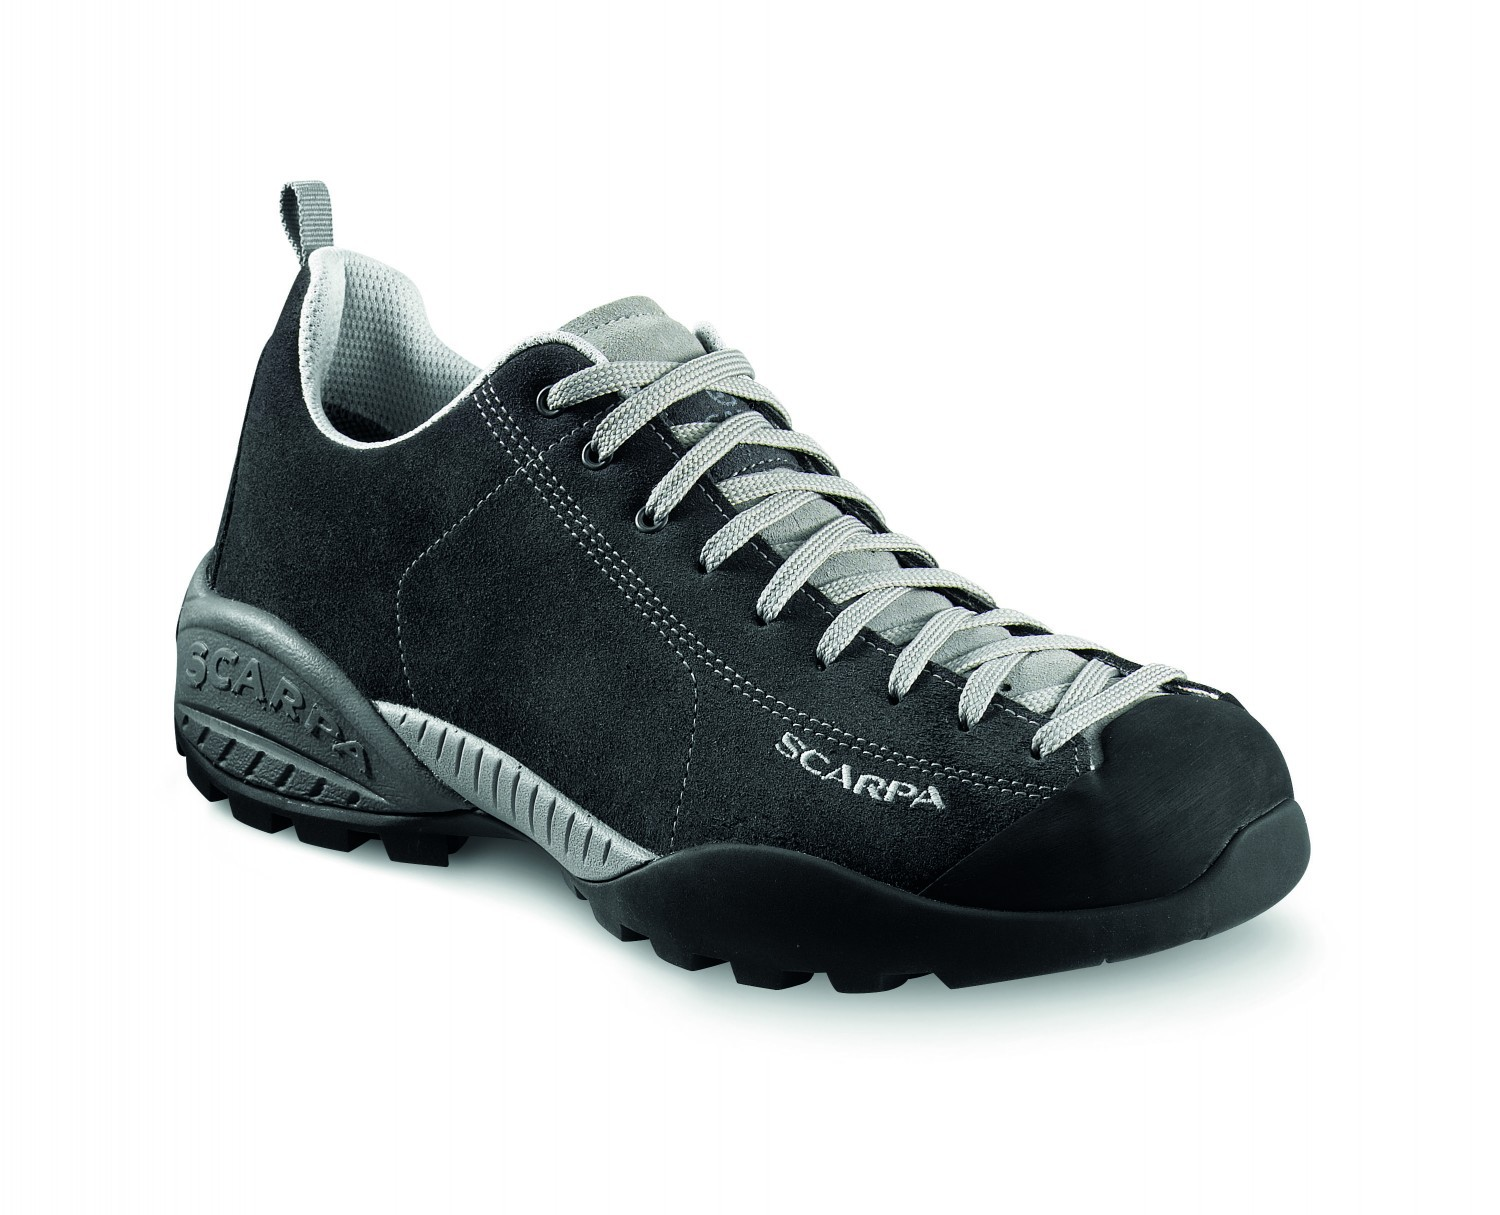 Scarpa - Mojito GTX Graphite - Approach Shoes - 36